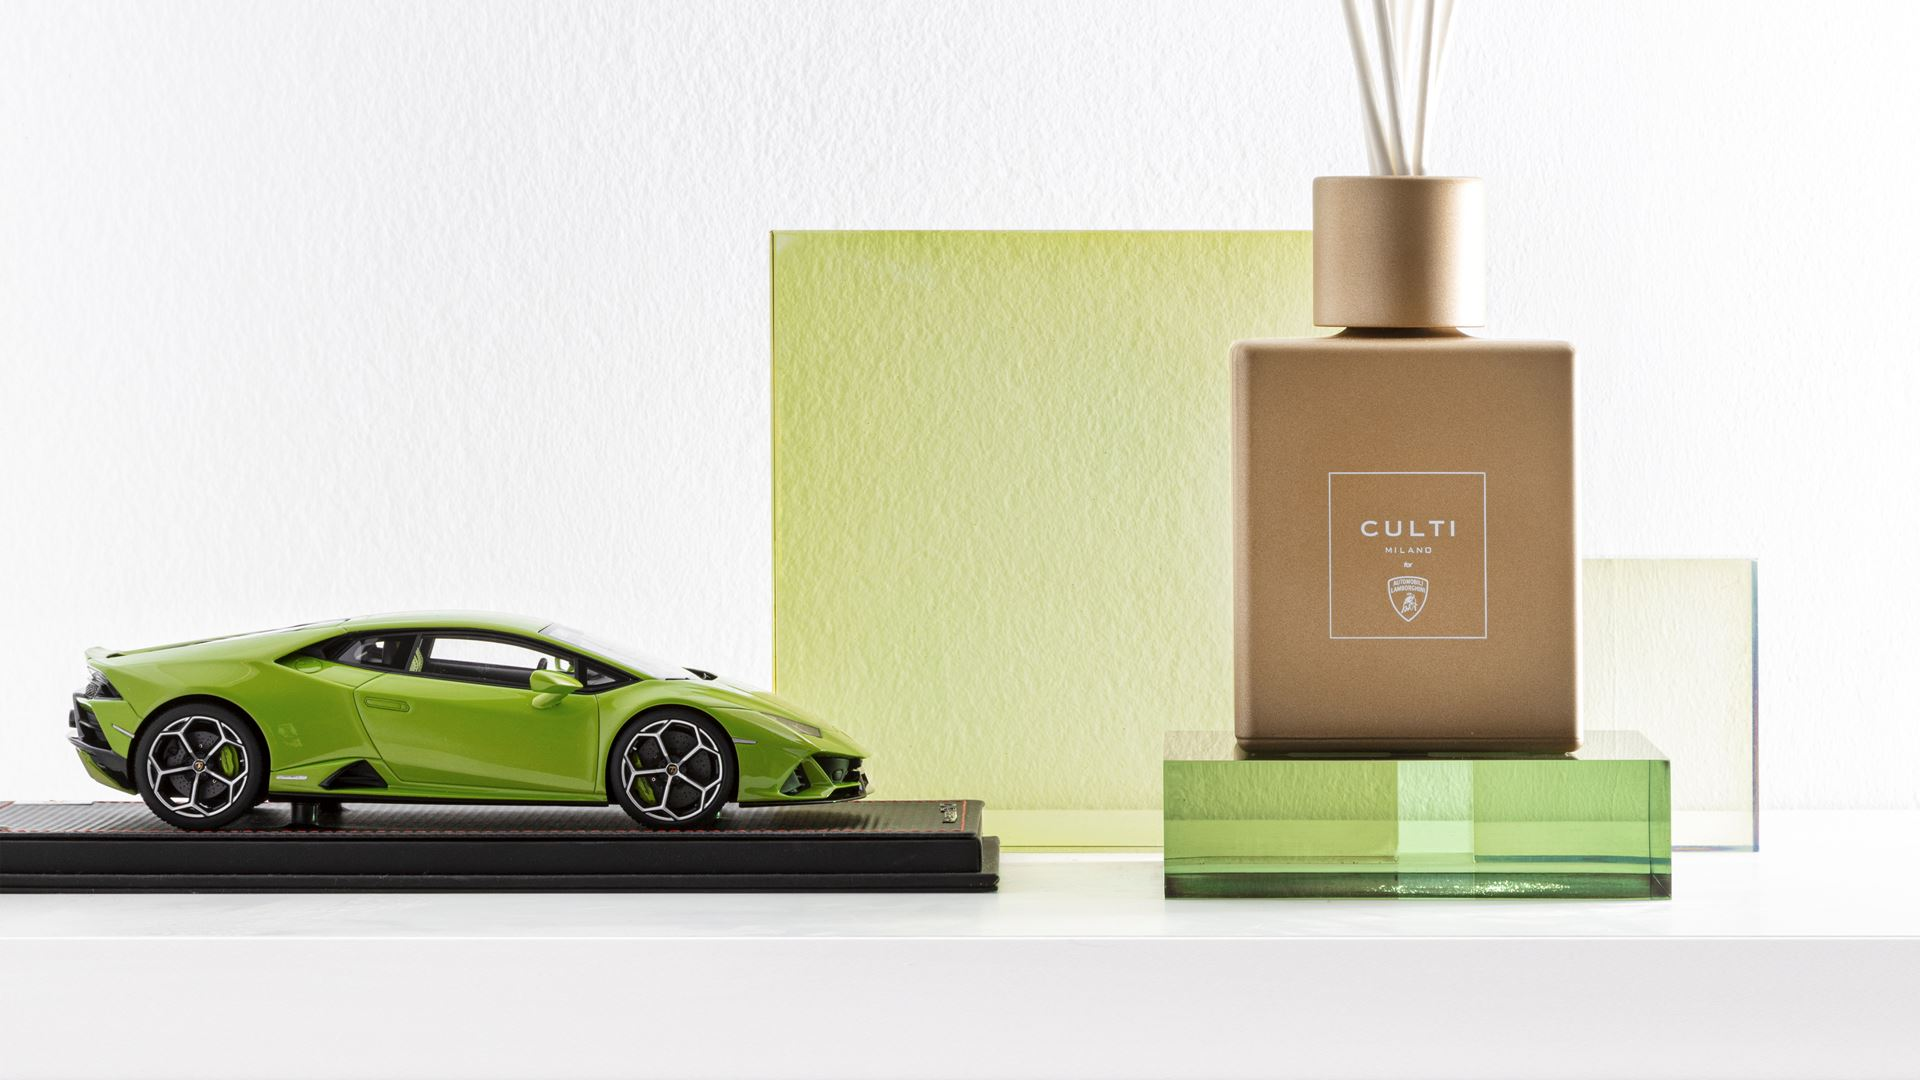 The first olfactory Automobili Lamborghini branding project signed by Culti Milano - Image 6